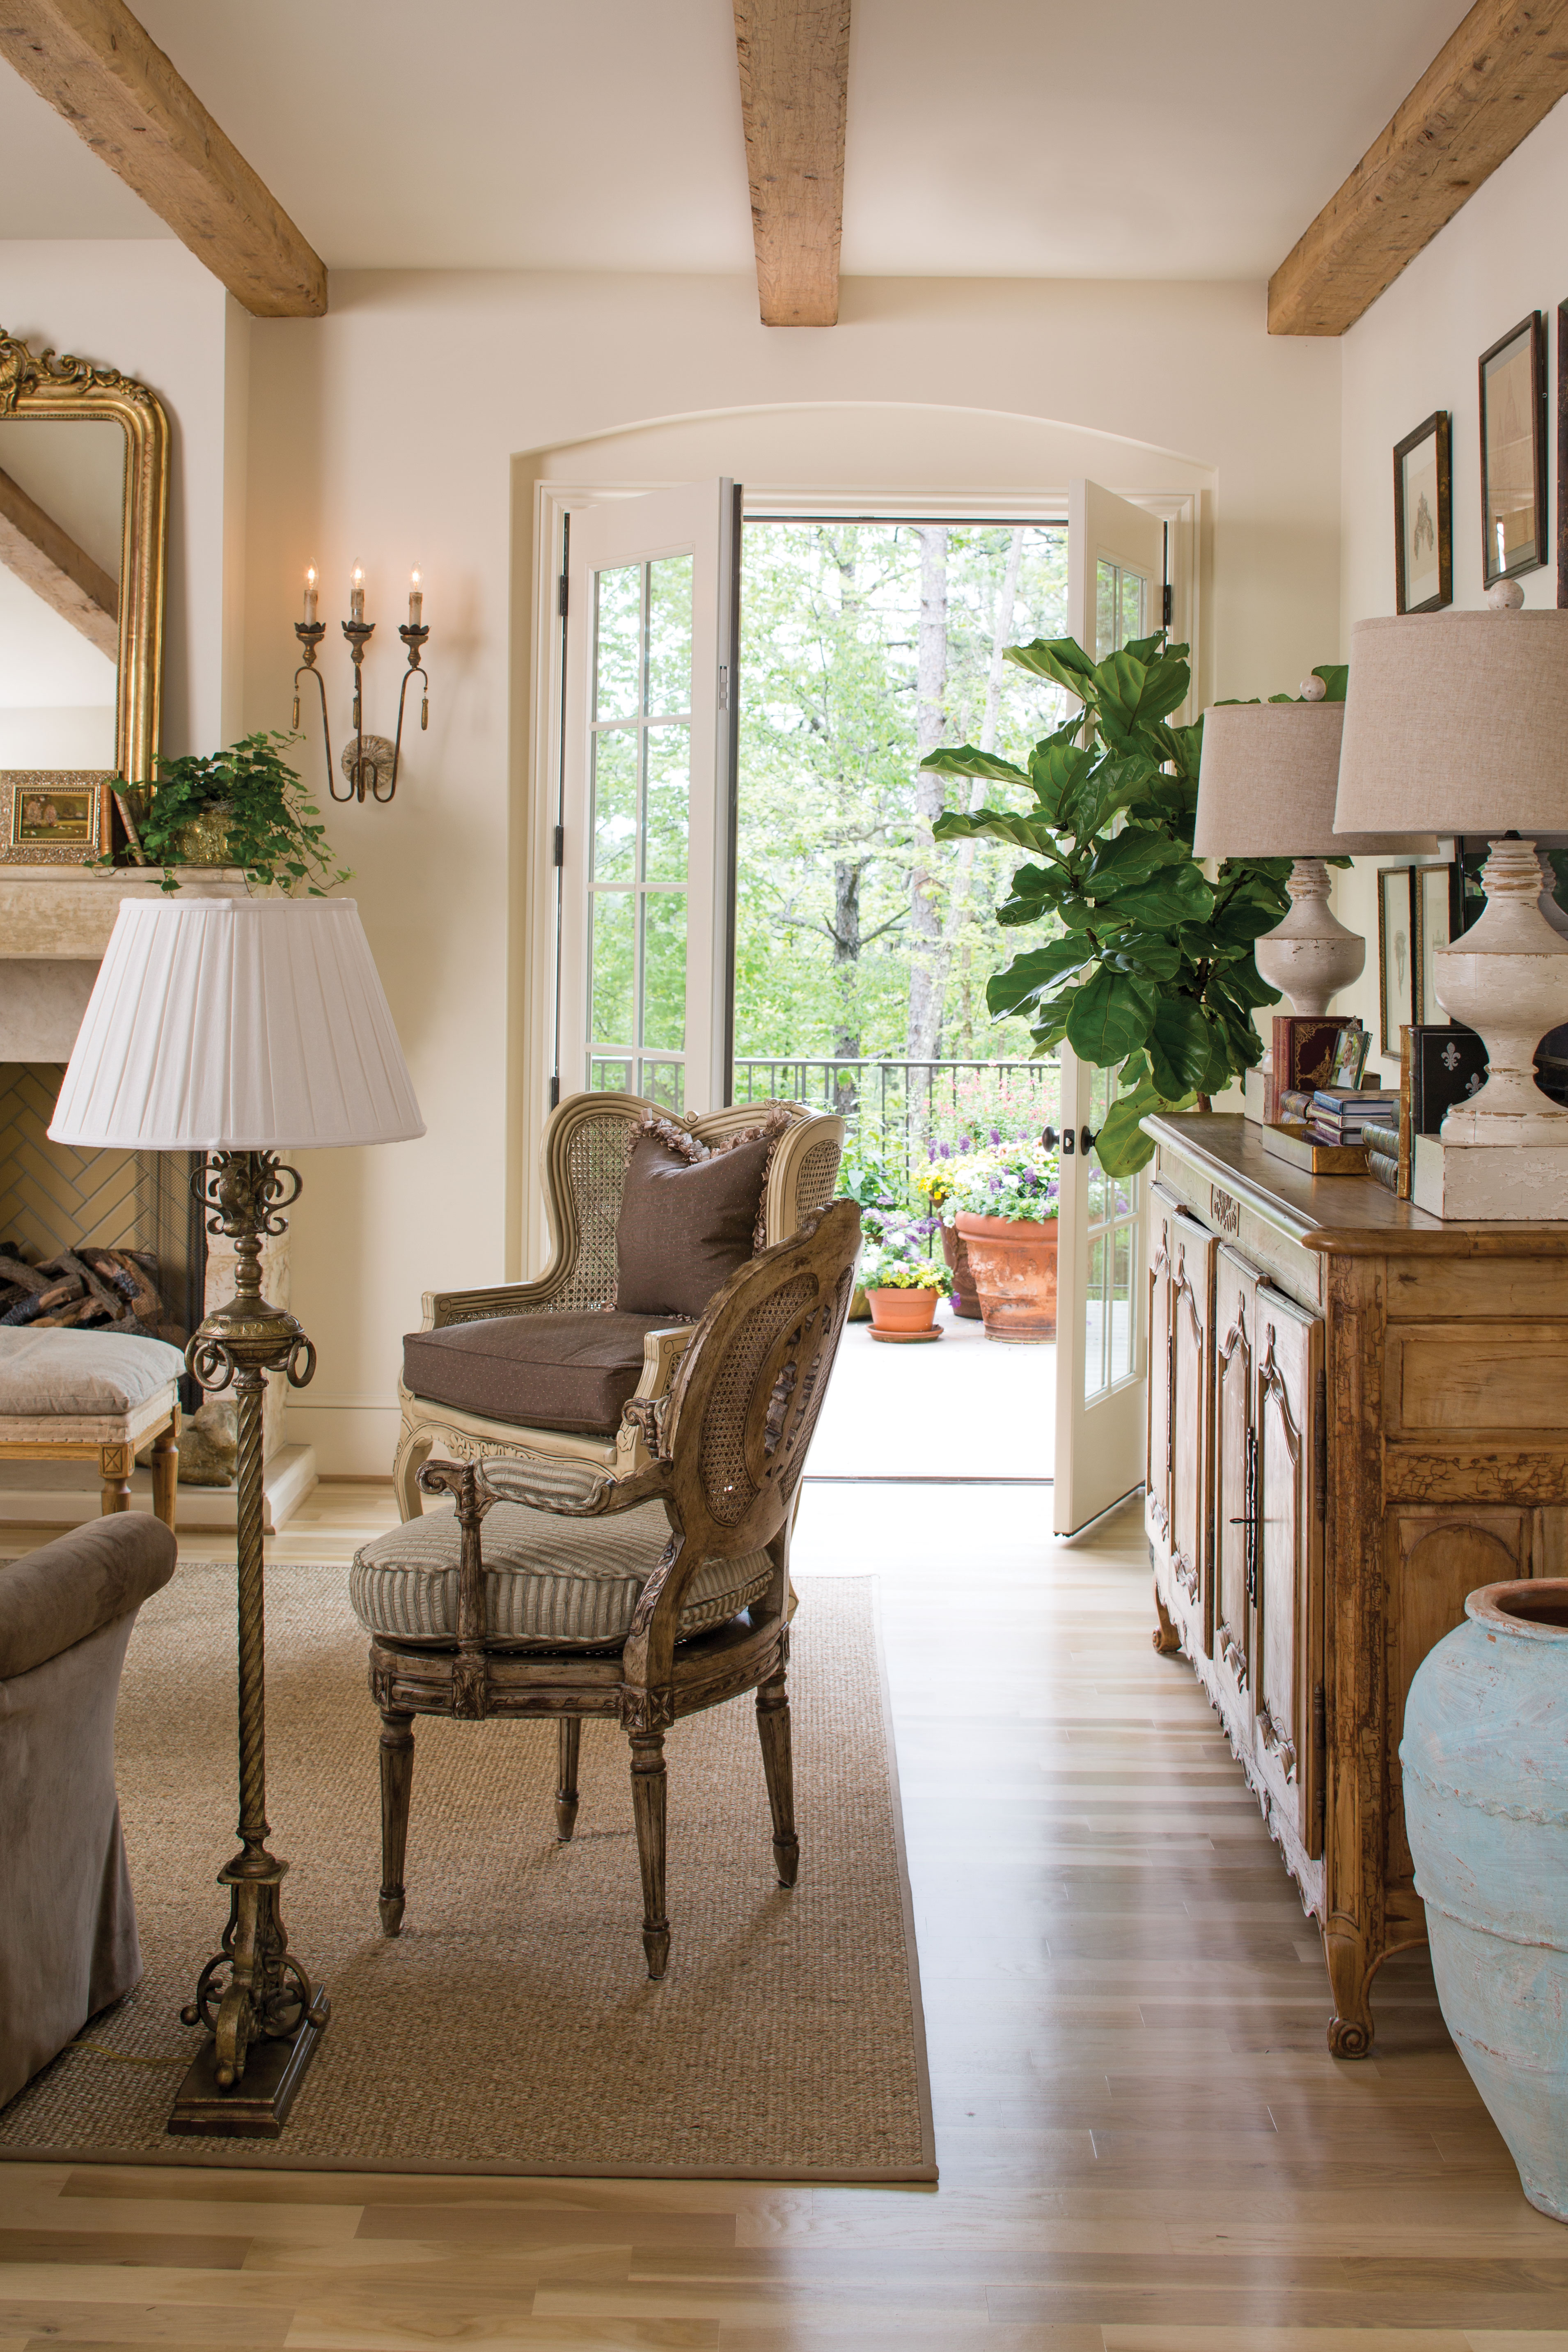 charming french country modern living room | French Country Charm Down South - Cottage Journal